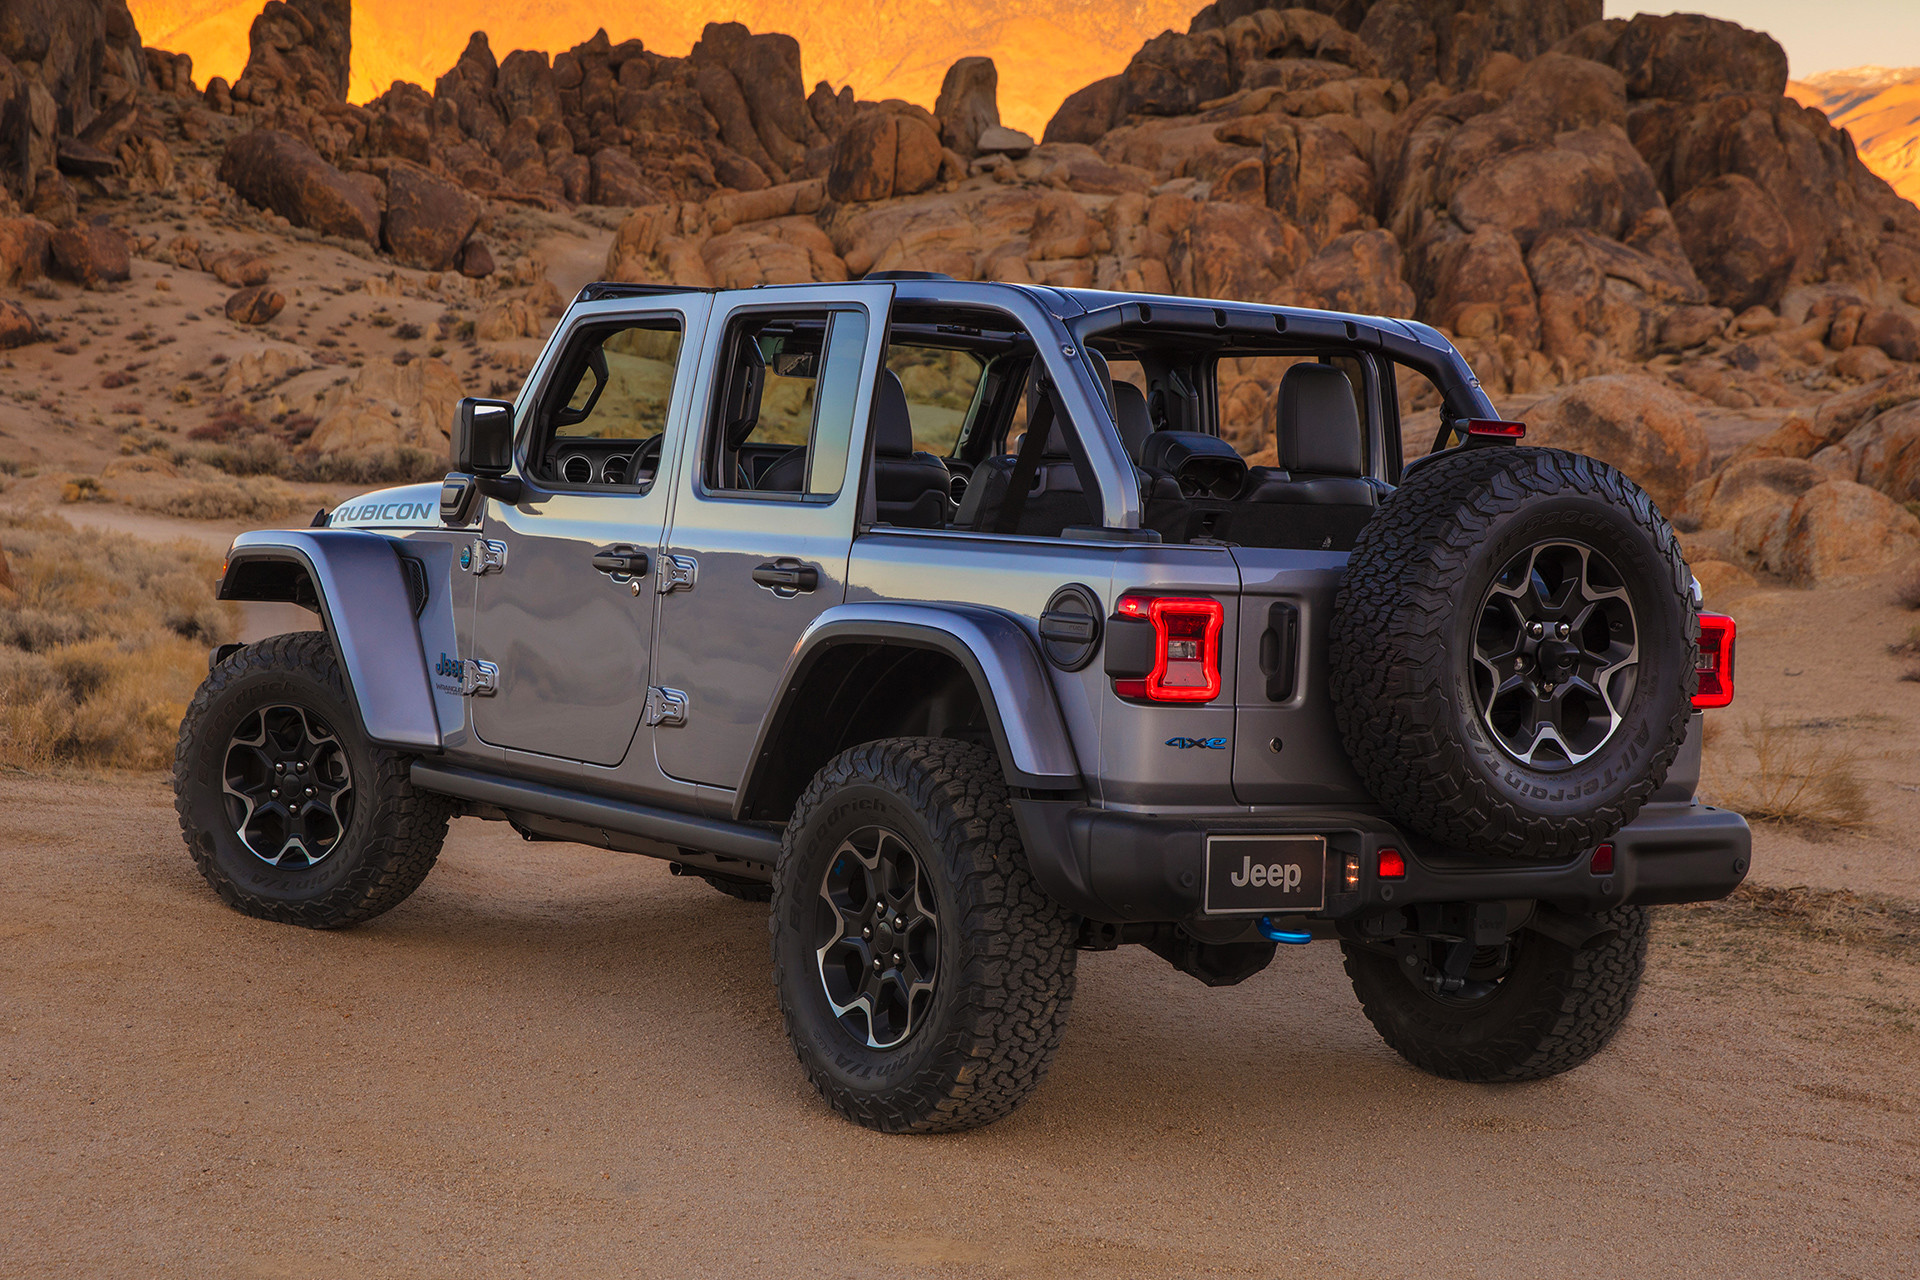 2021 Jeep Wrangler 4xe parked in the desert with top off.